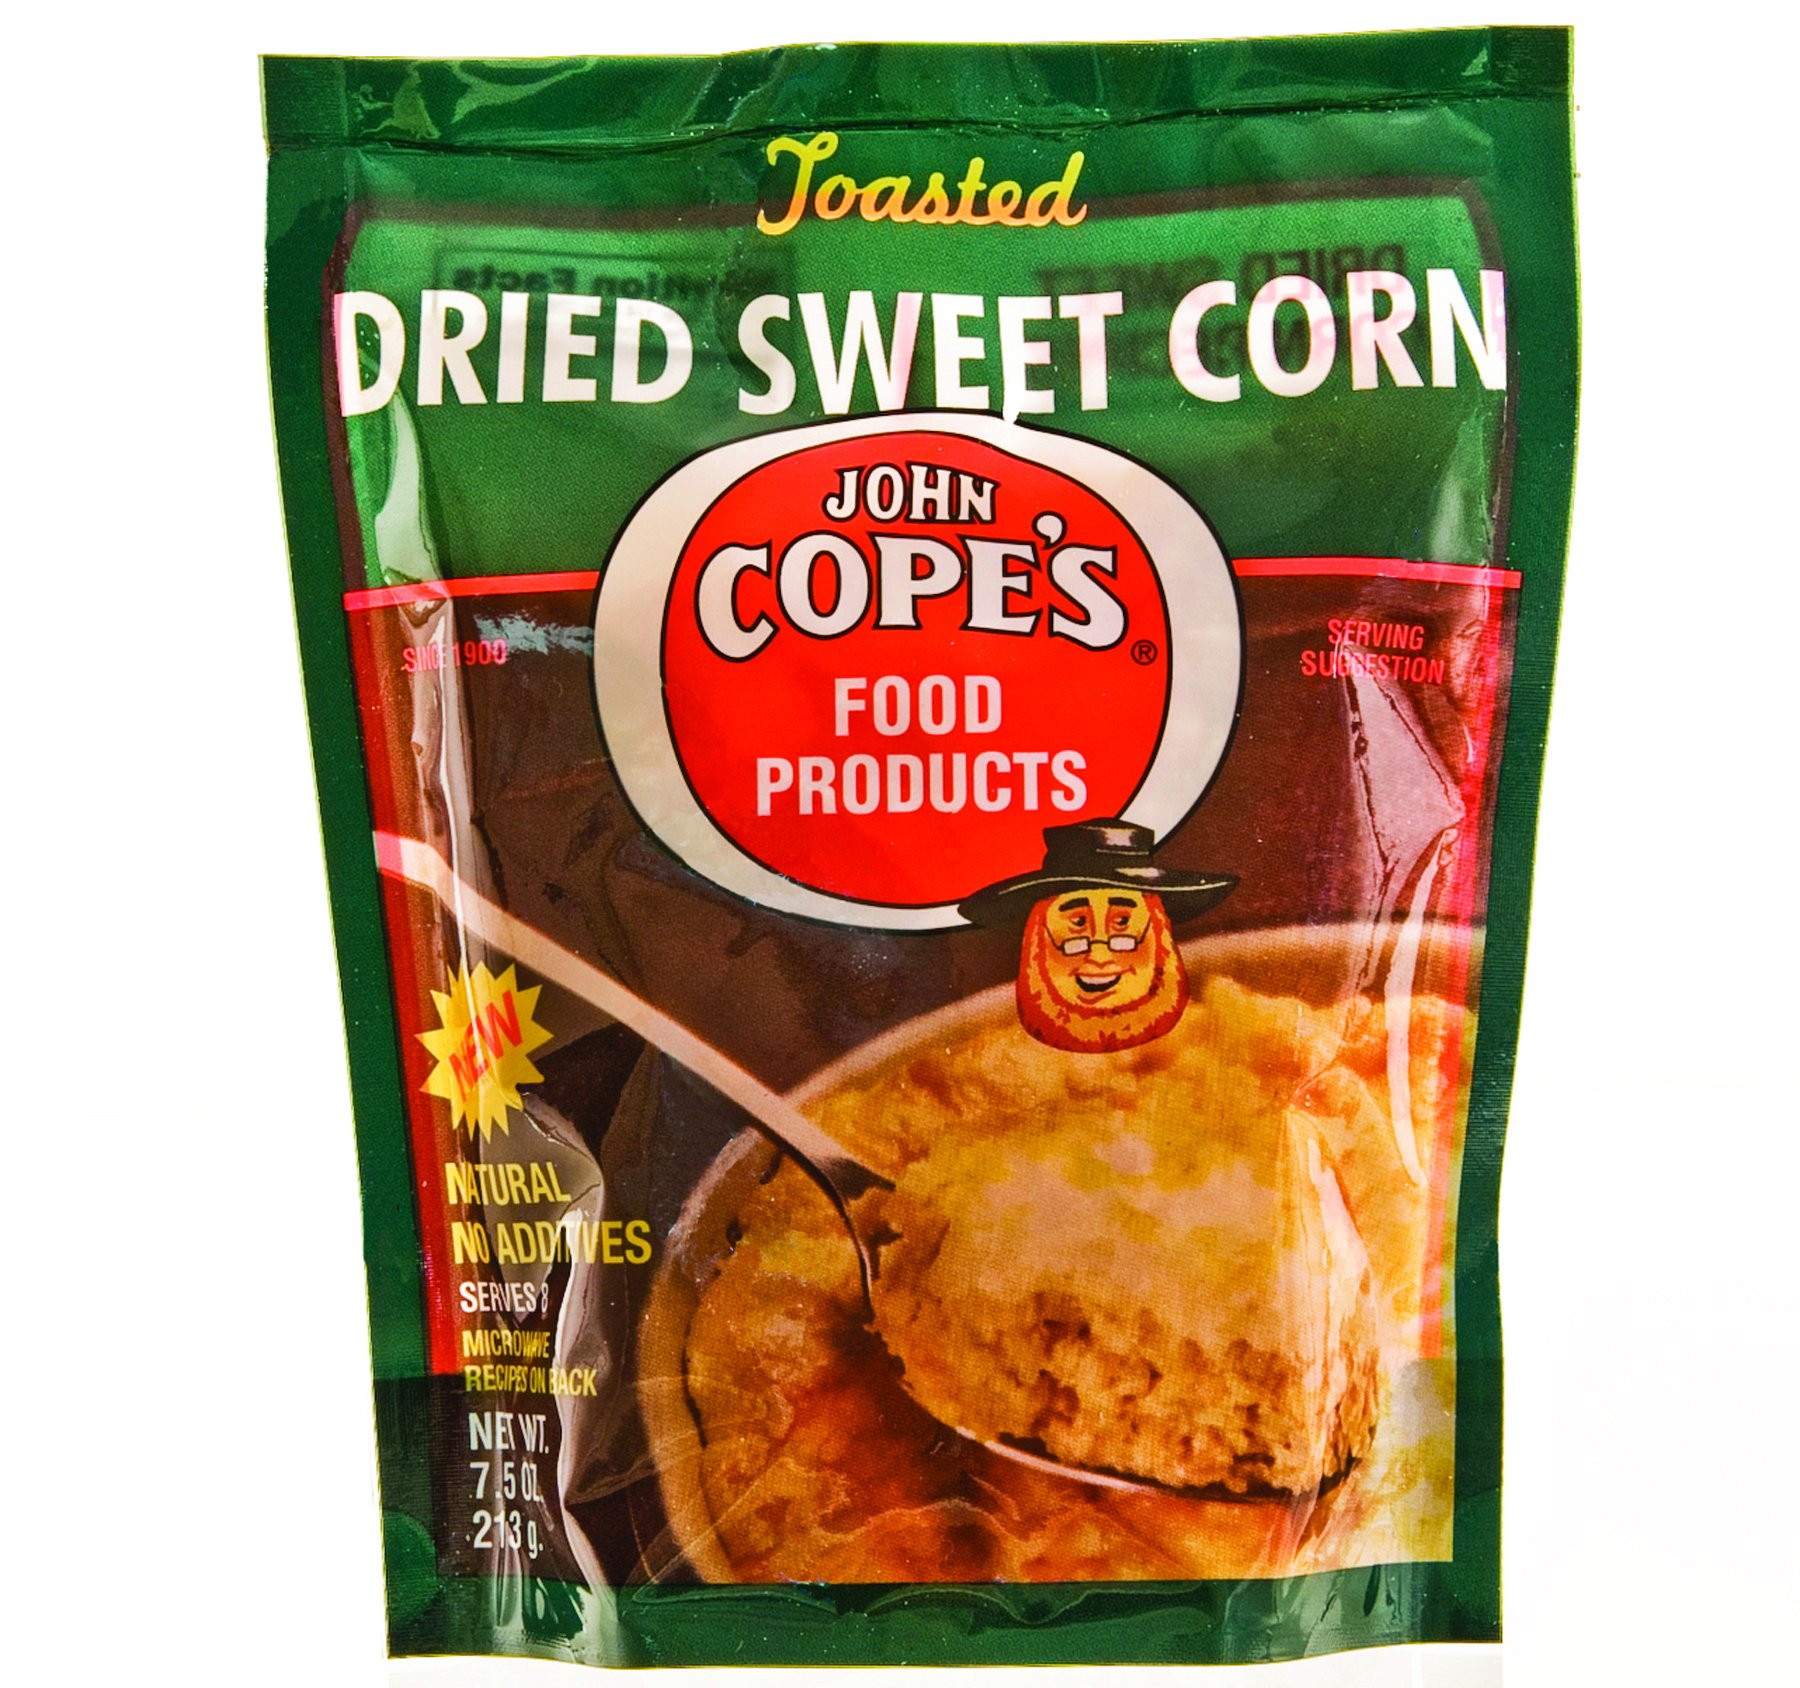 COPES CORN SWEET DRIED, 7.5 OZ (3 pack)